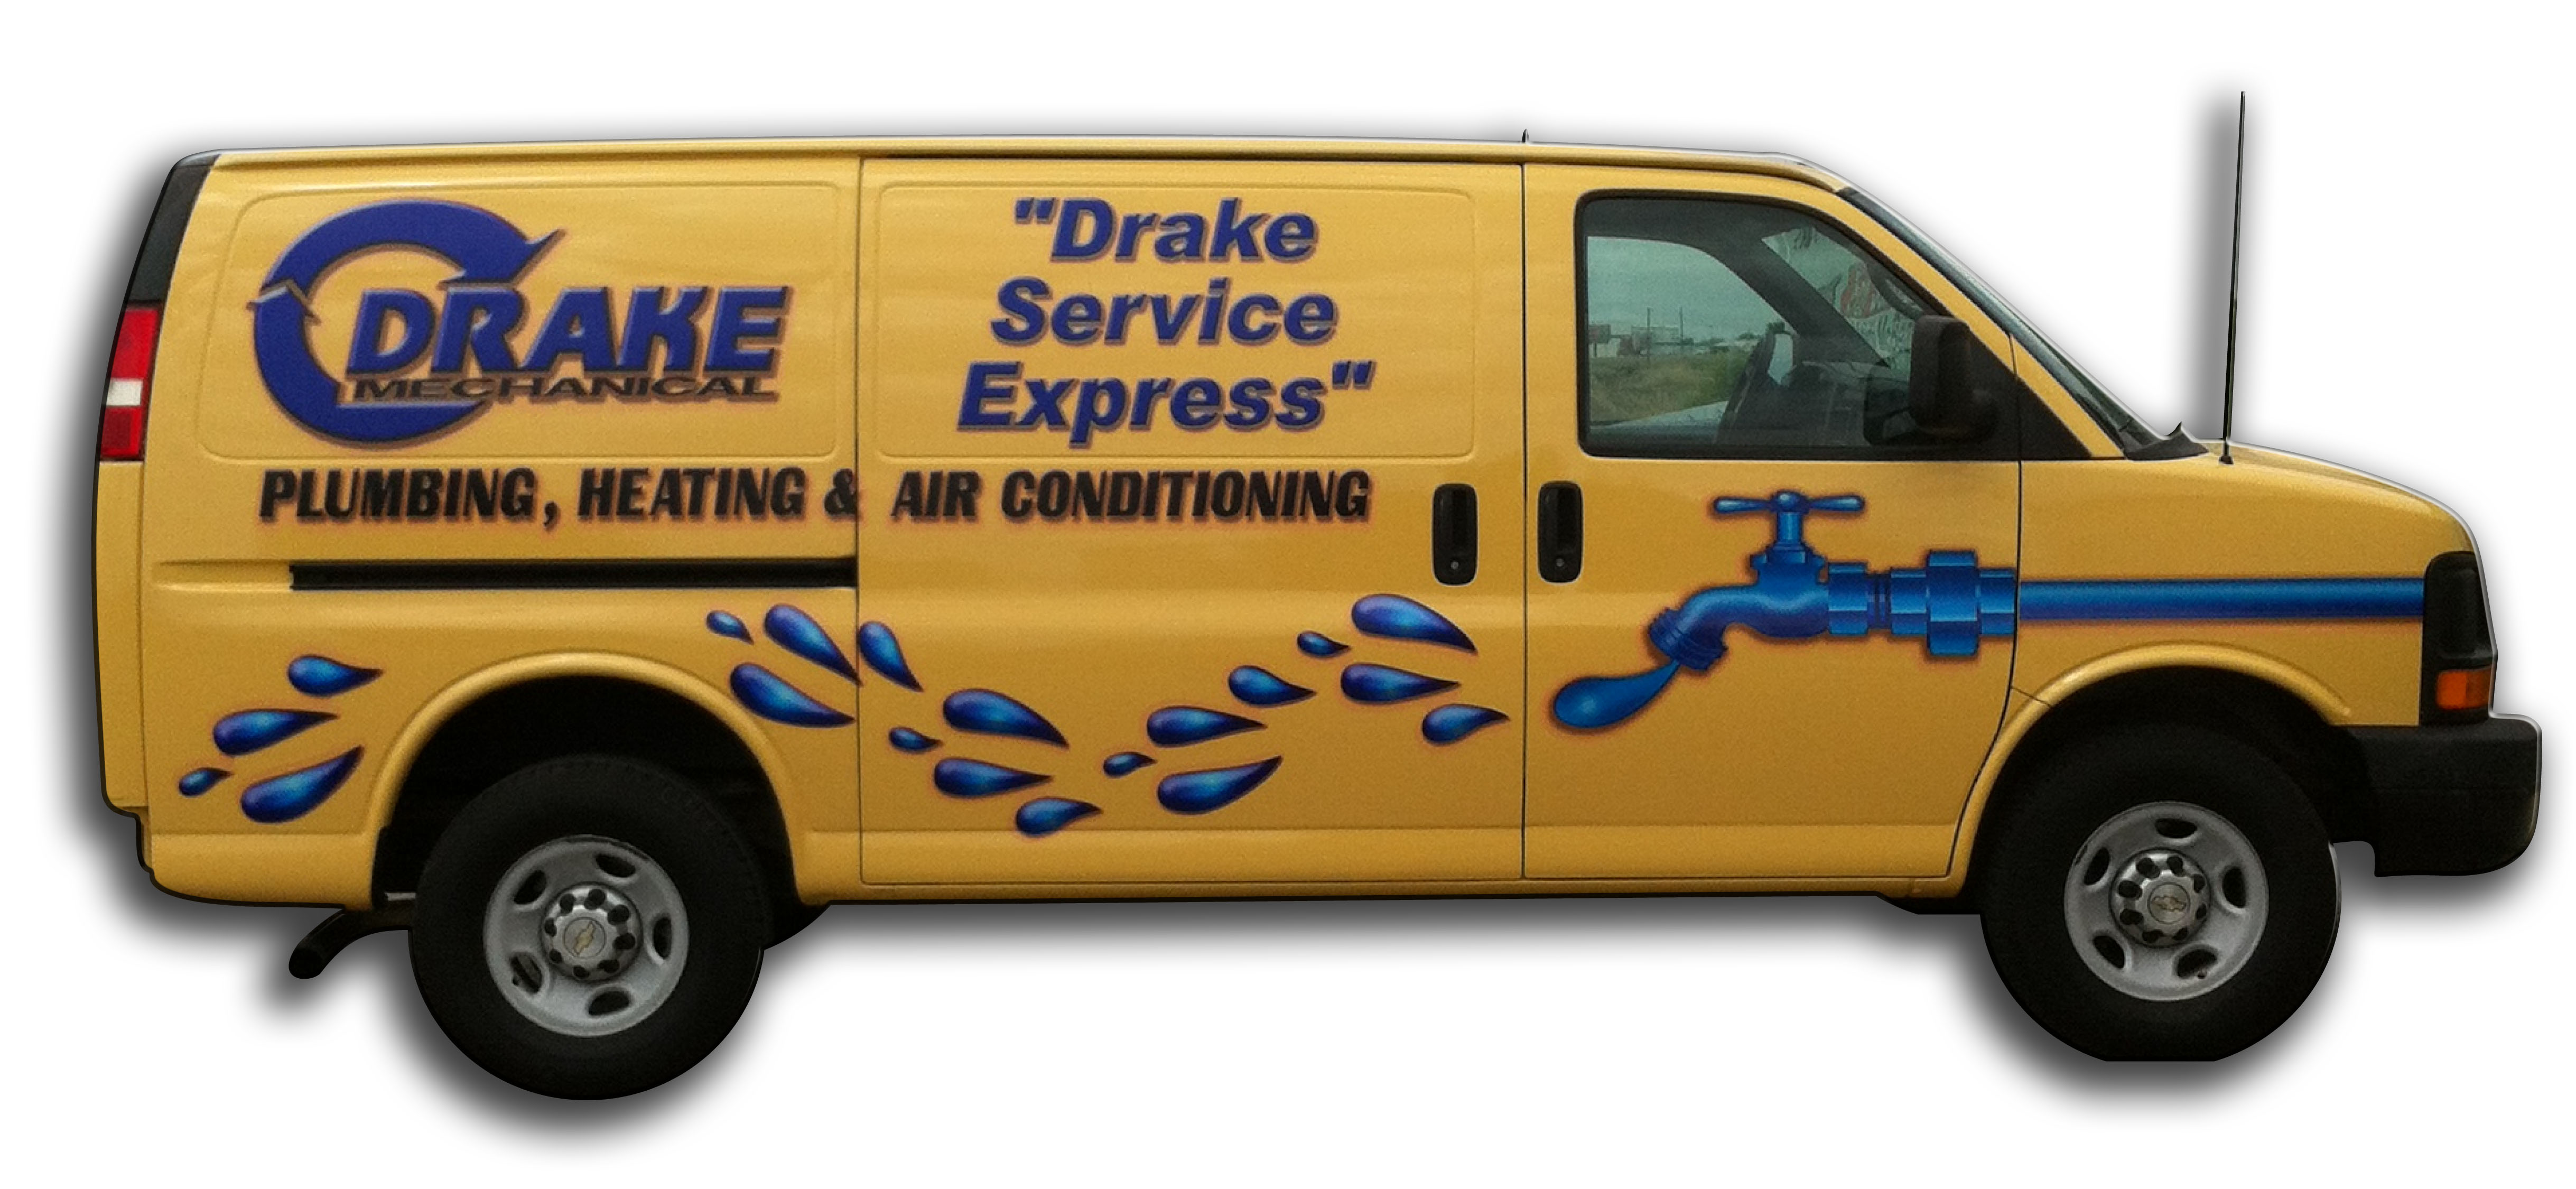 Drake Mechanical Plumbing Heating and Air Conditioning Service